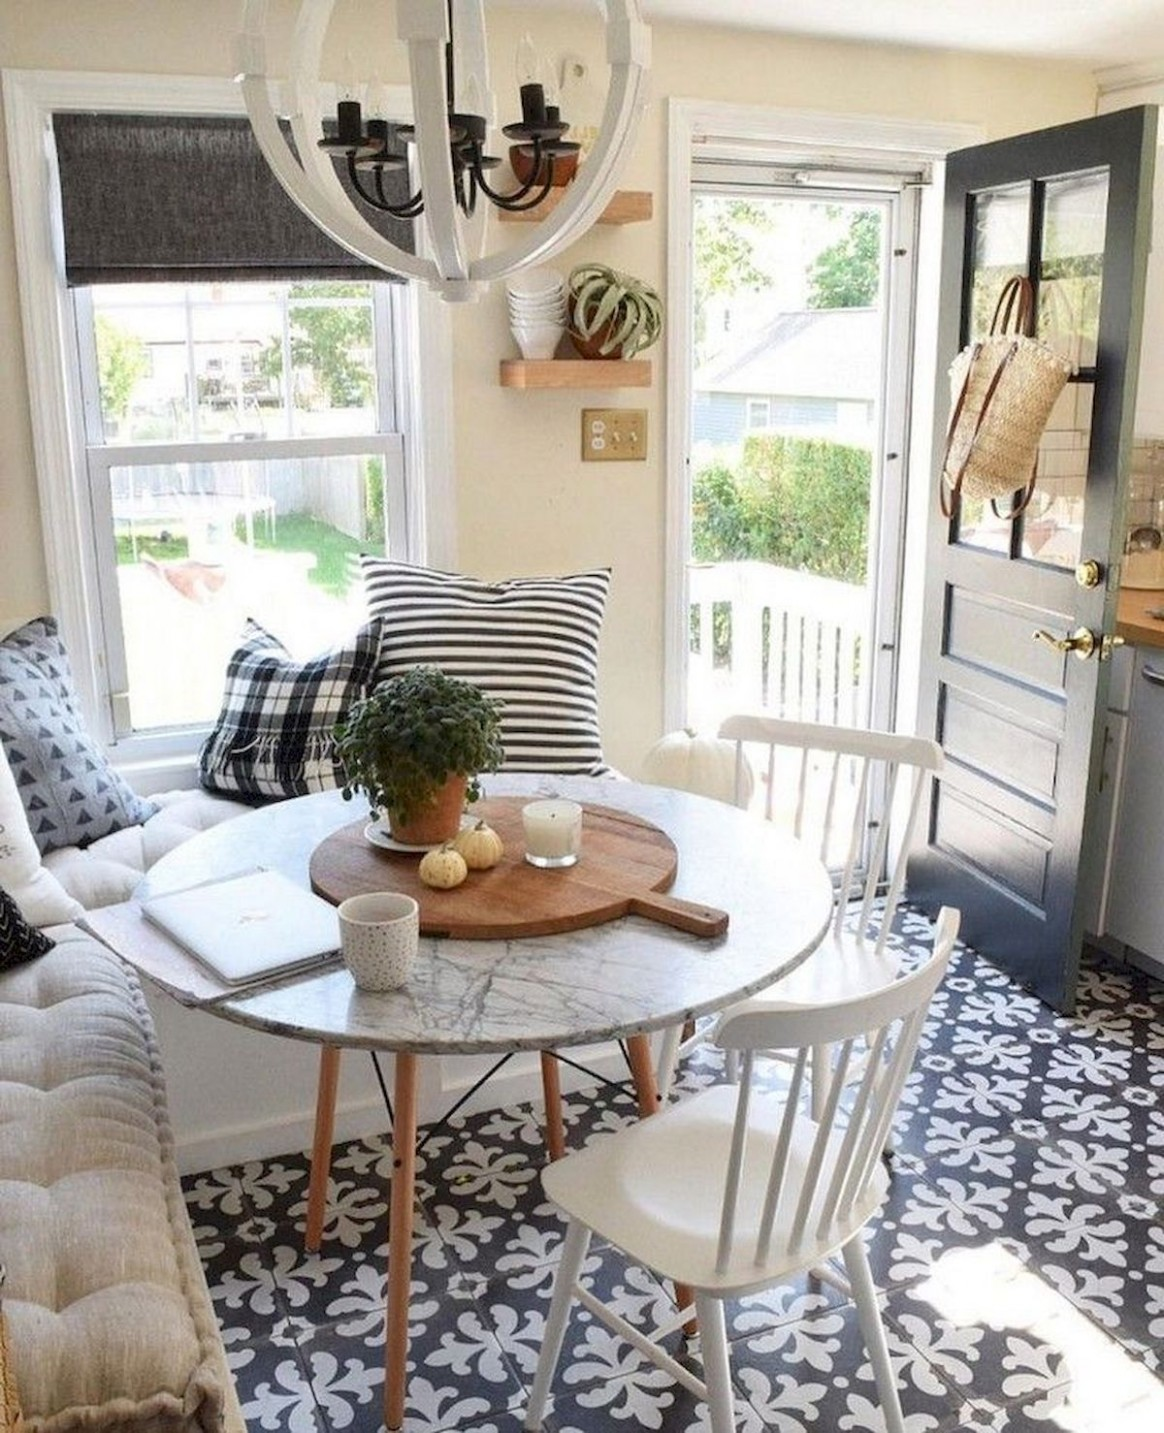 12 Beautiful Small Dining Room Ideas On A Budget  SHAIROOM